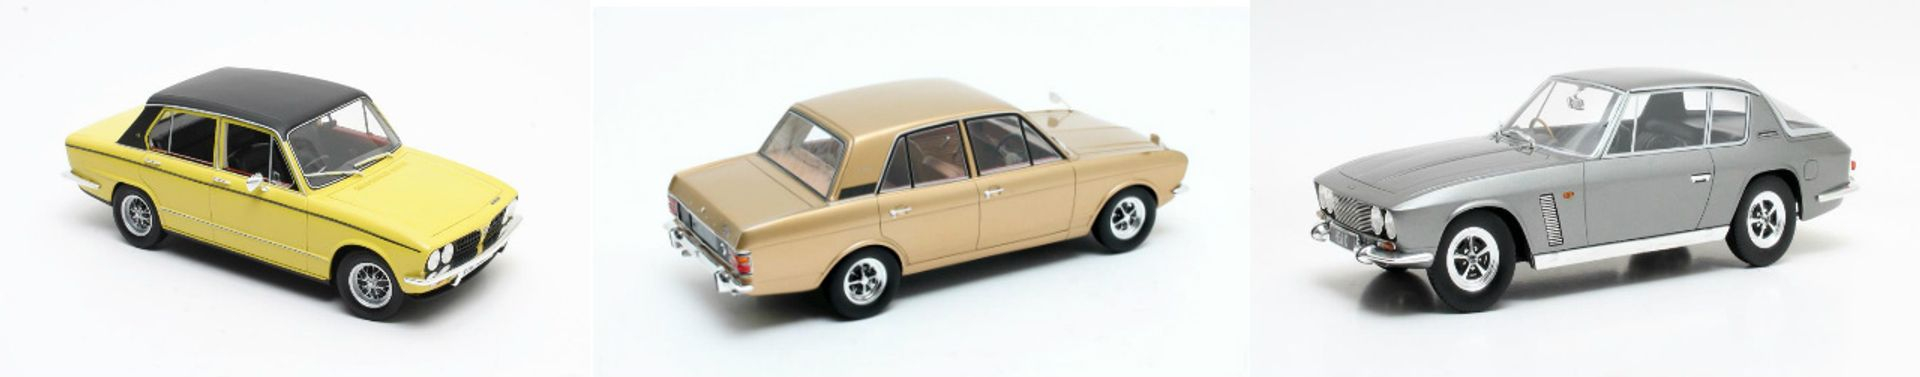 Diecast and Resin Models cars